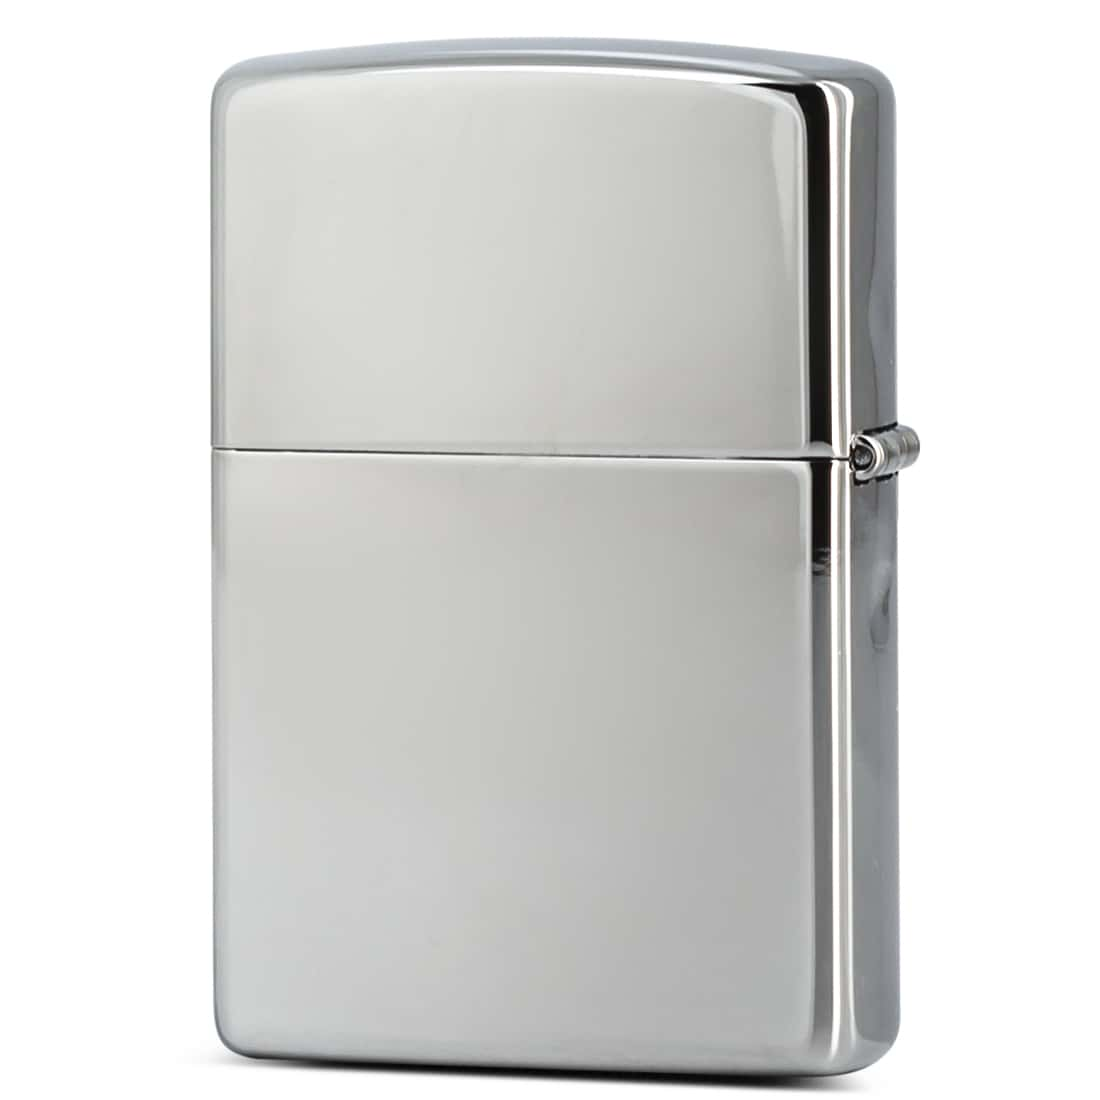 Photo #2 de Zippo high polish chromé grand modèle 850035